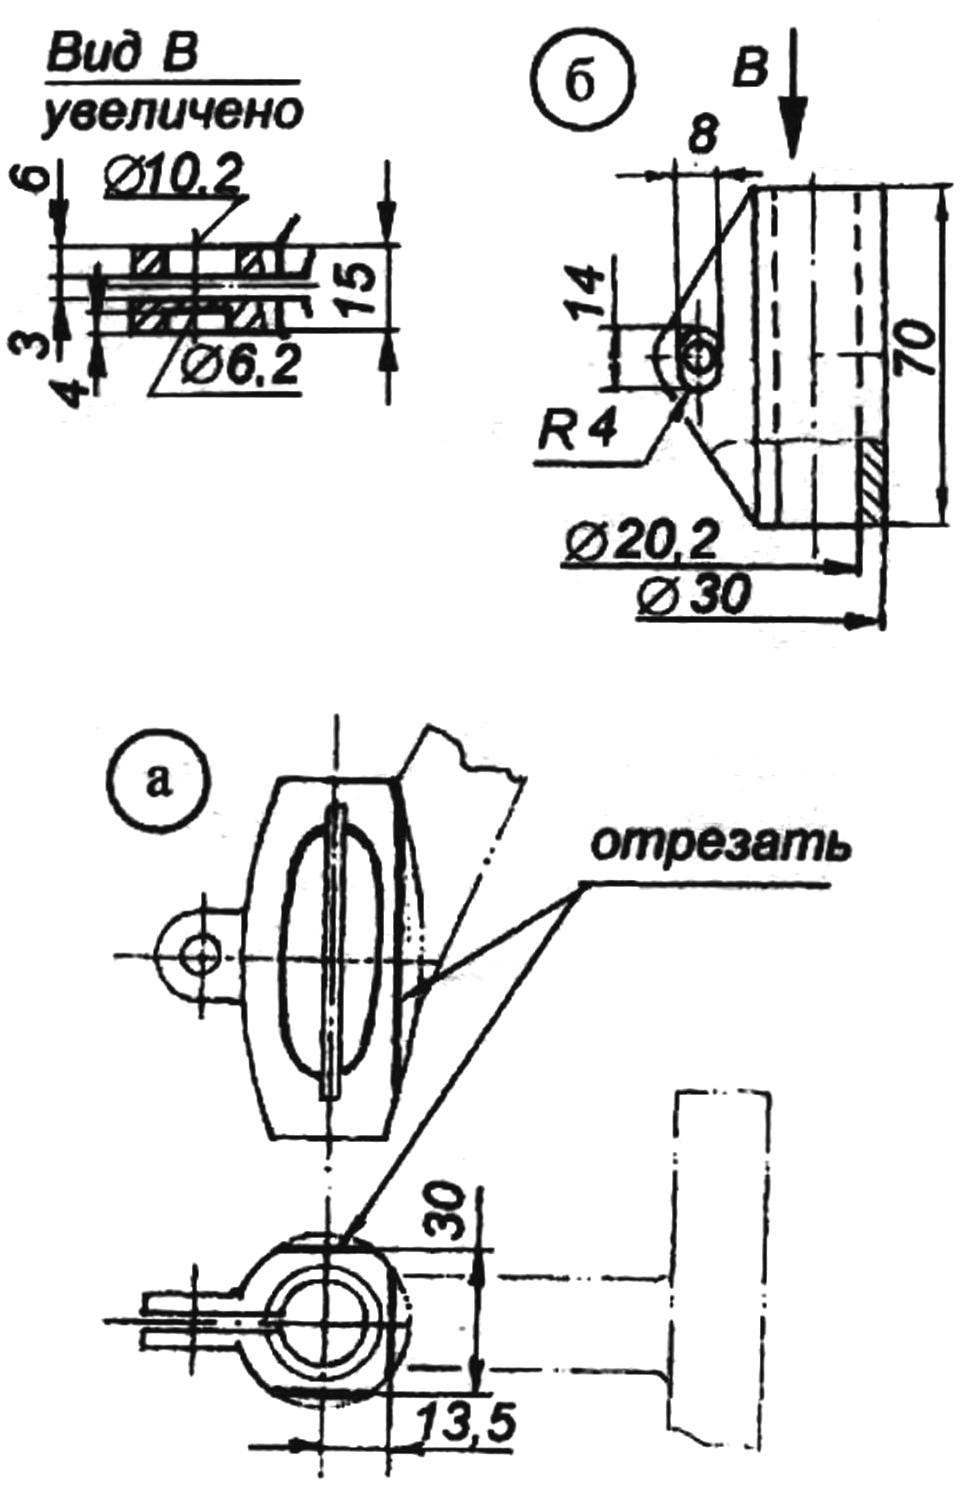 Fig. 2. Support sleeve